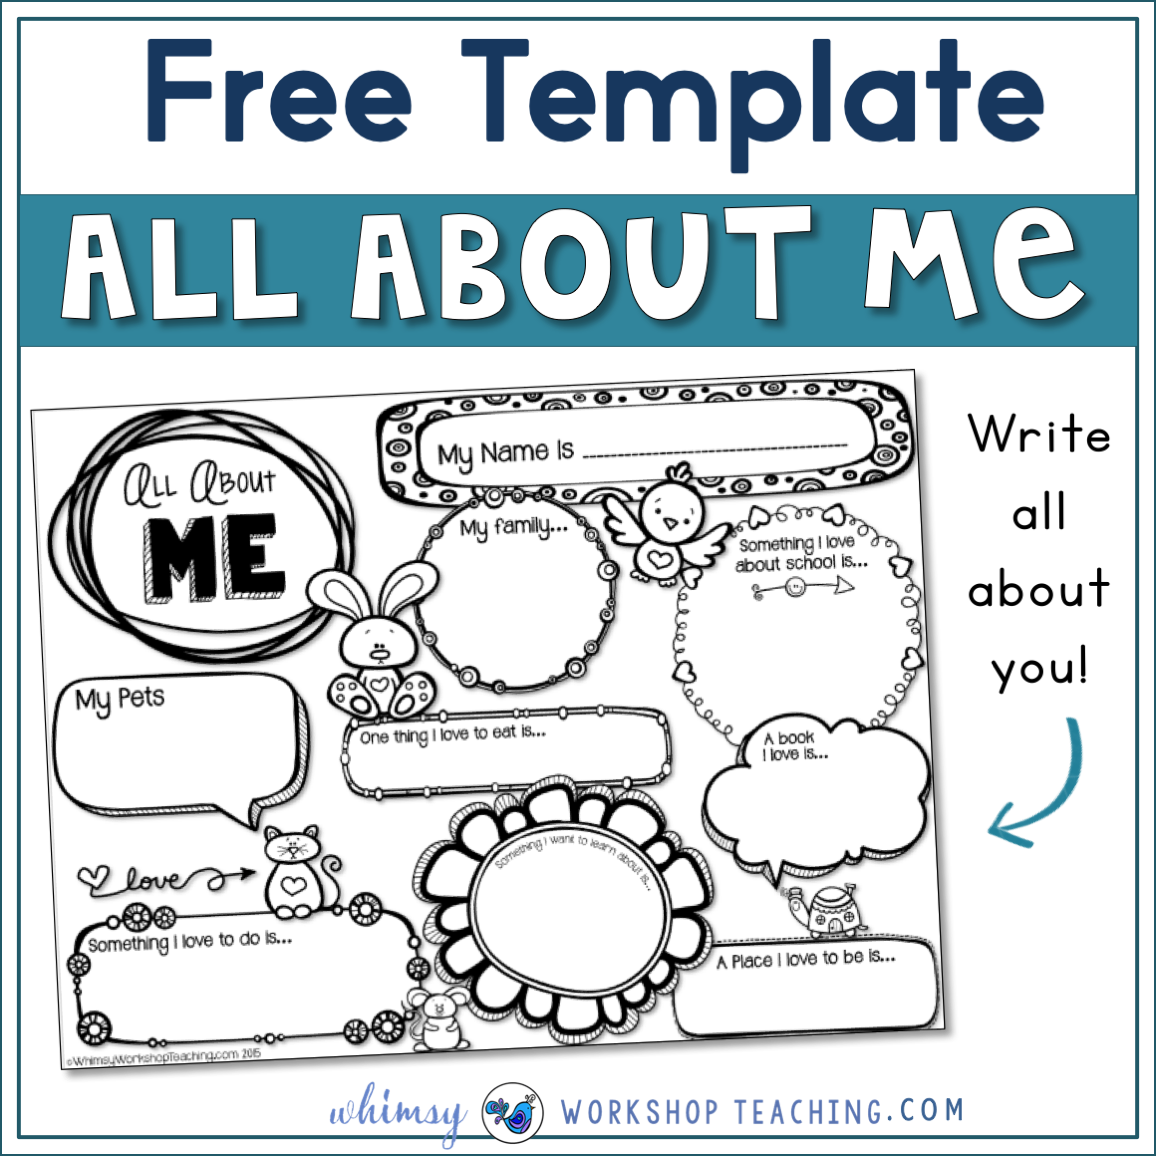 S t e m and growth mindset whimsy workshop teaching for About me template for students